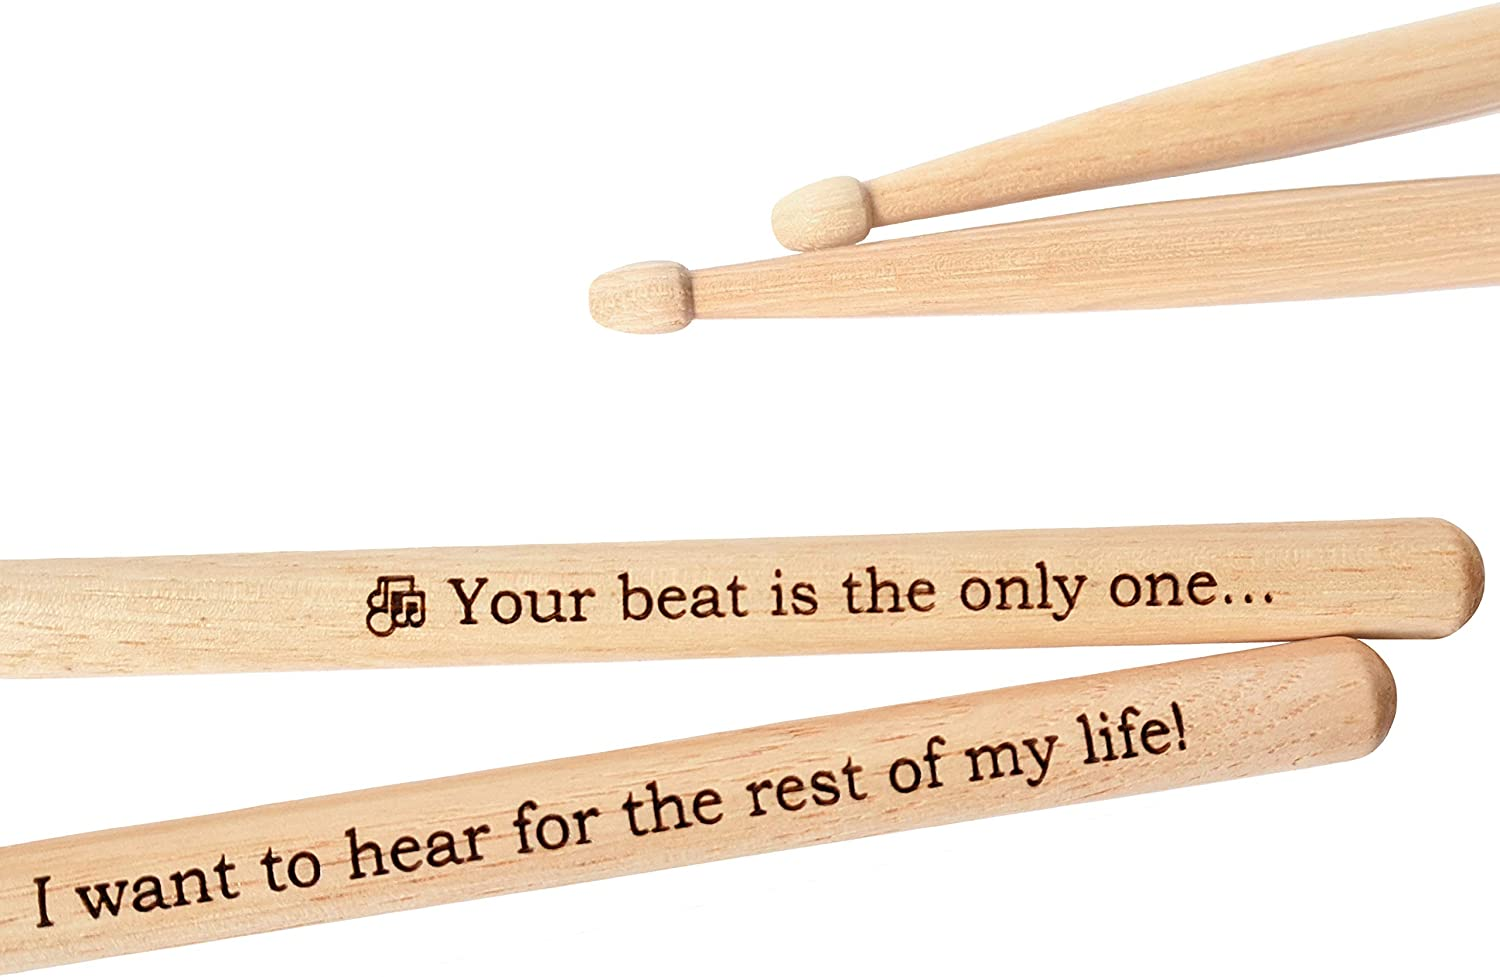 Engraved Drumsticks Wooden Drum Sticks 1 PAIR Gift for Drummer Men Musician Wedding Groomsman Great Gift Idea for Boyfriend Husband Valentine's Day Gift Sign Natural Hickory Wood (Your Beat)